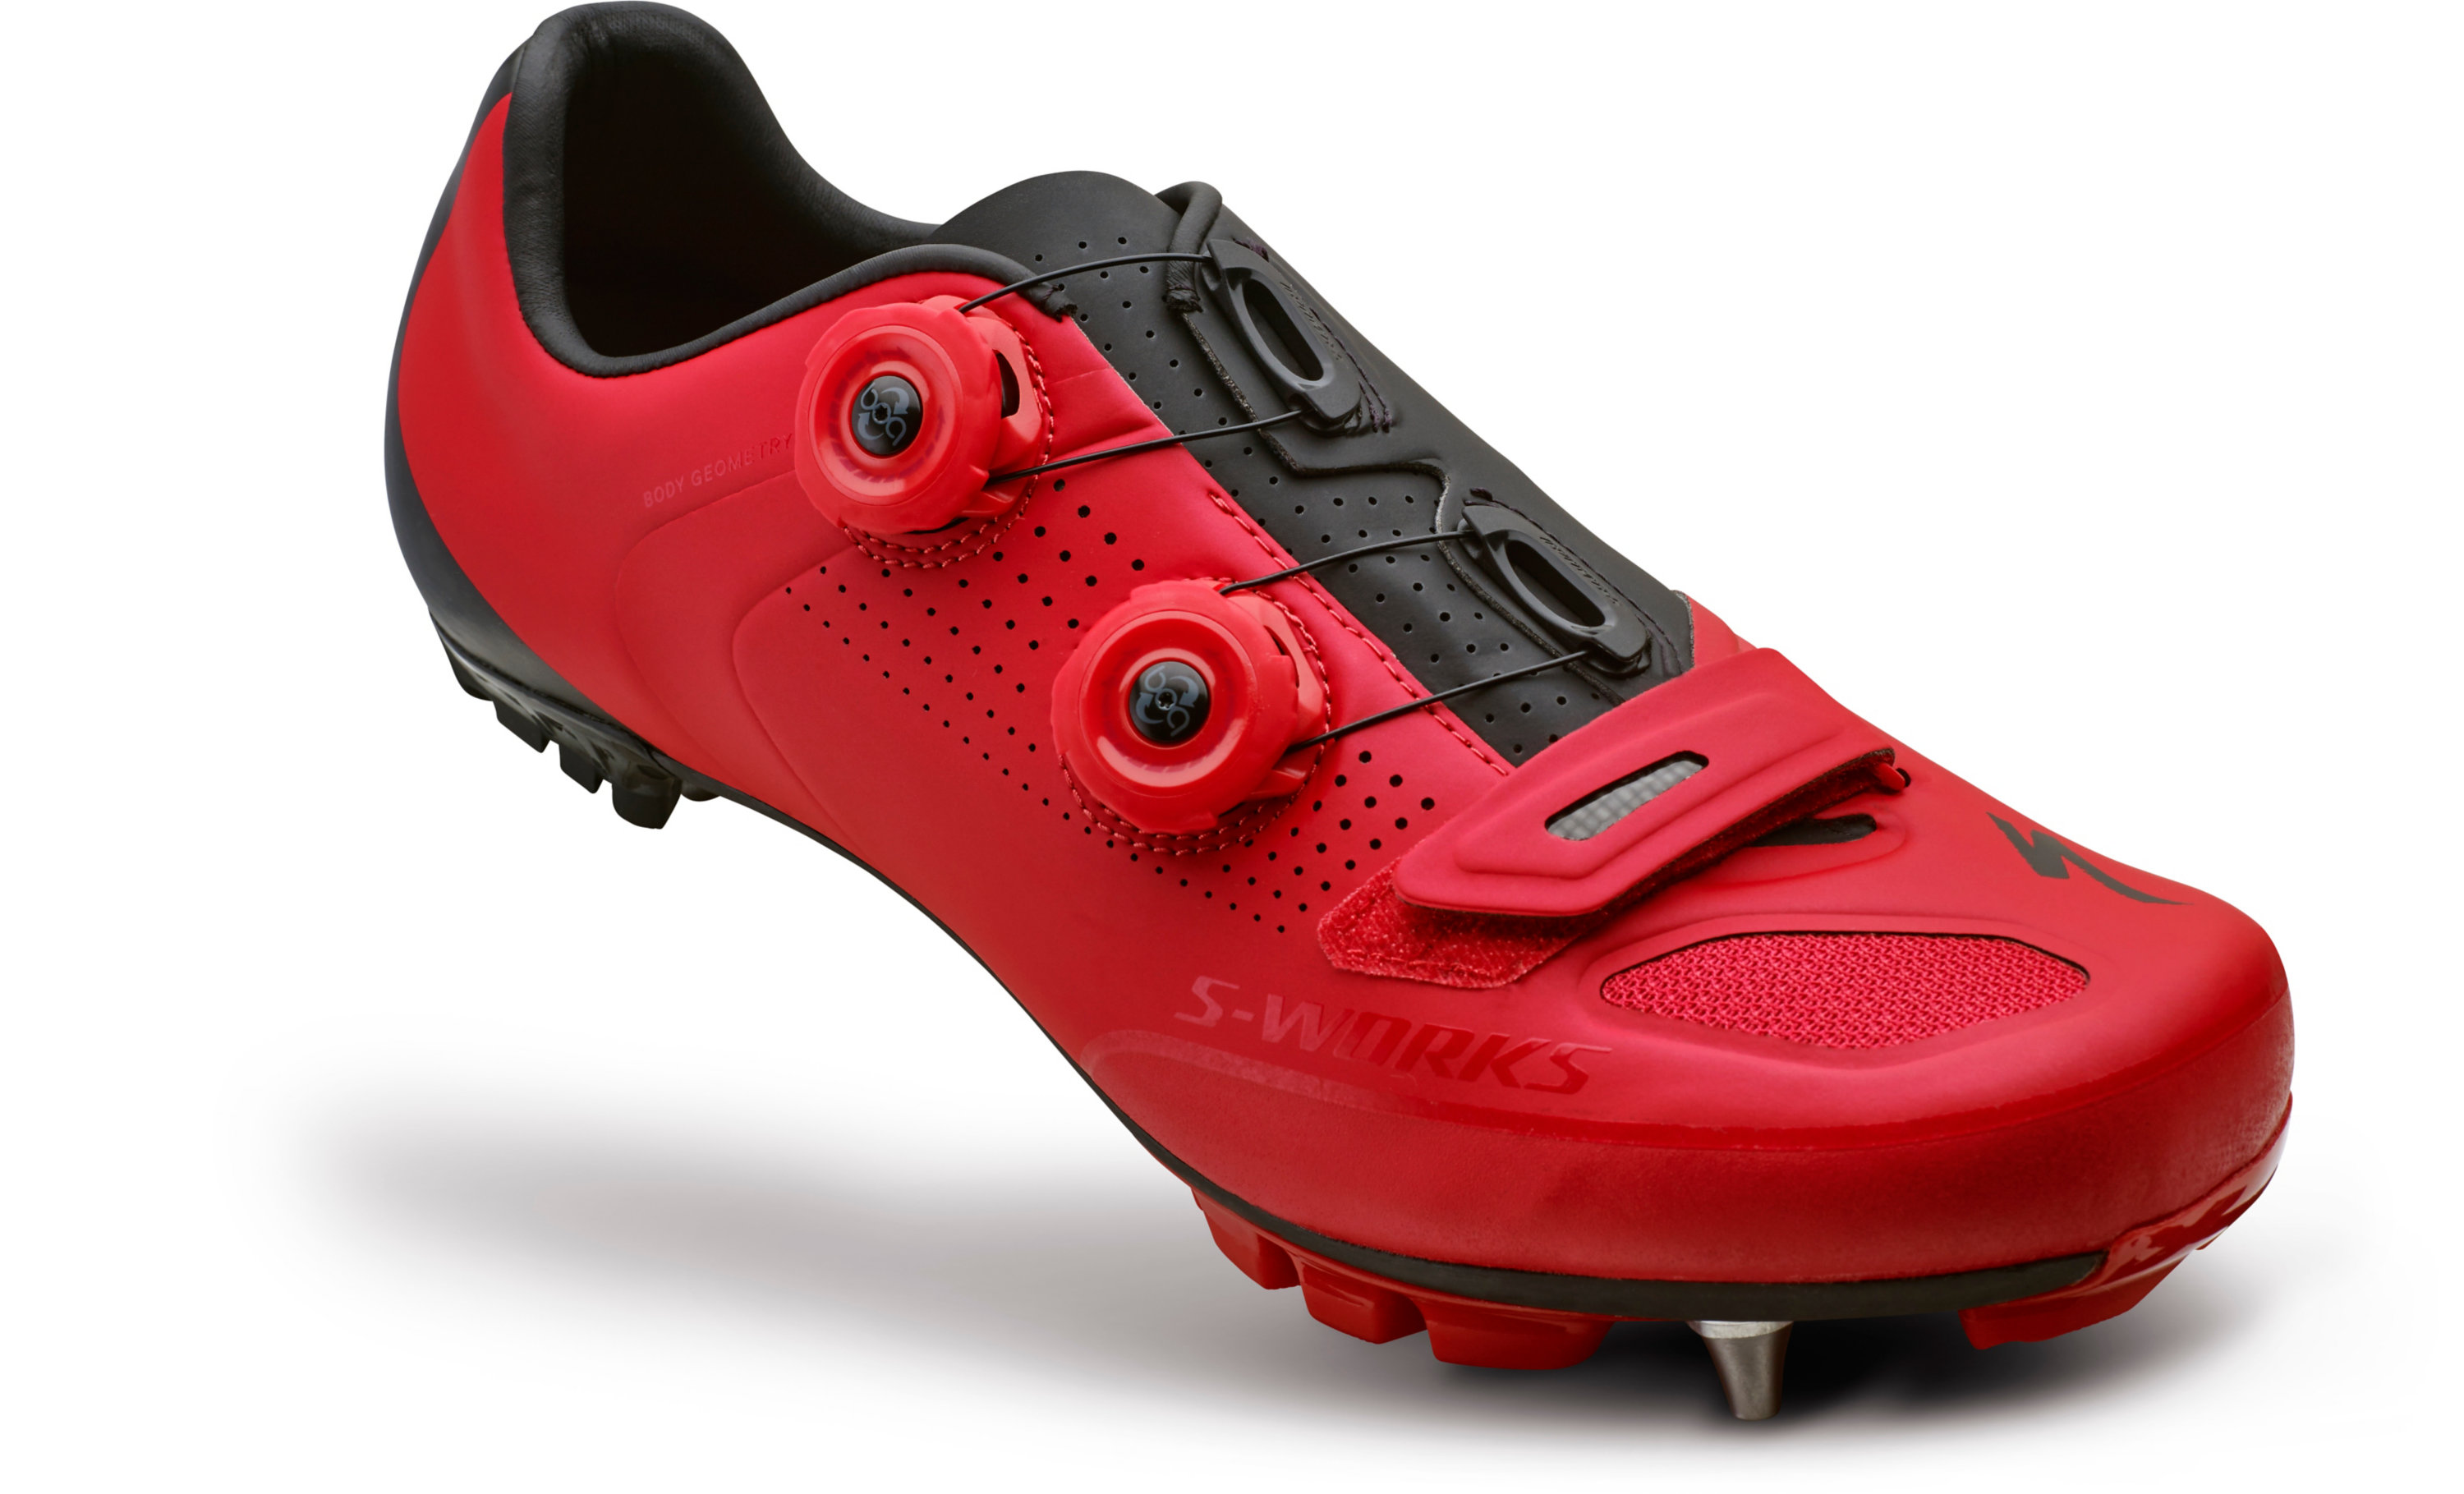 SPECIALIZED SW XC MTB SHOE RED/BLK 39/6.5 - Bikedreams & Dustbikes